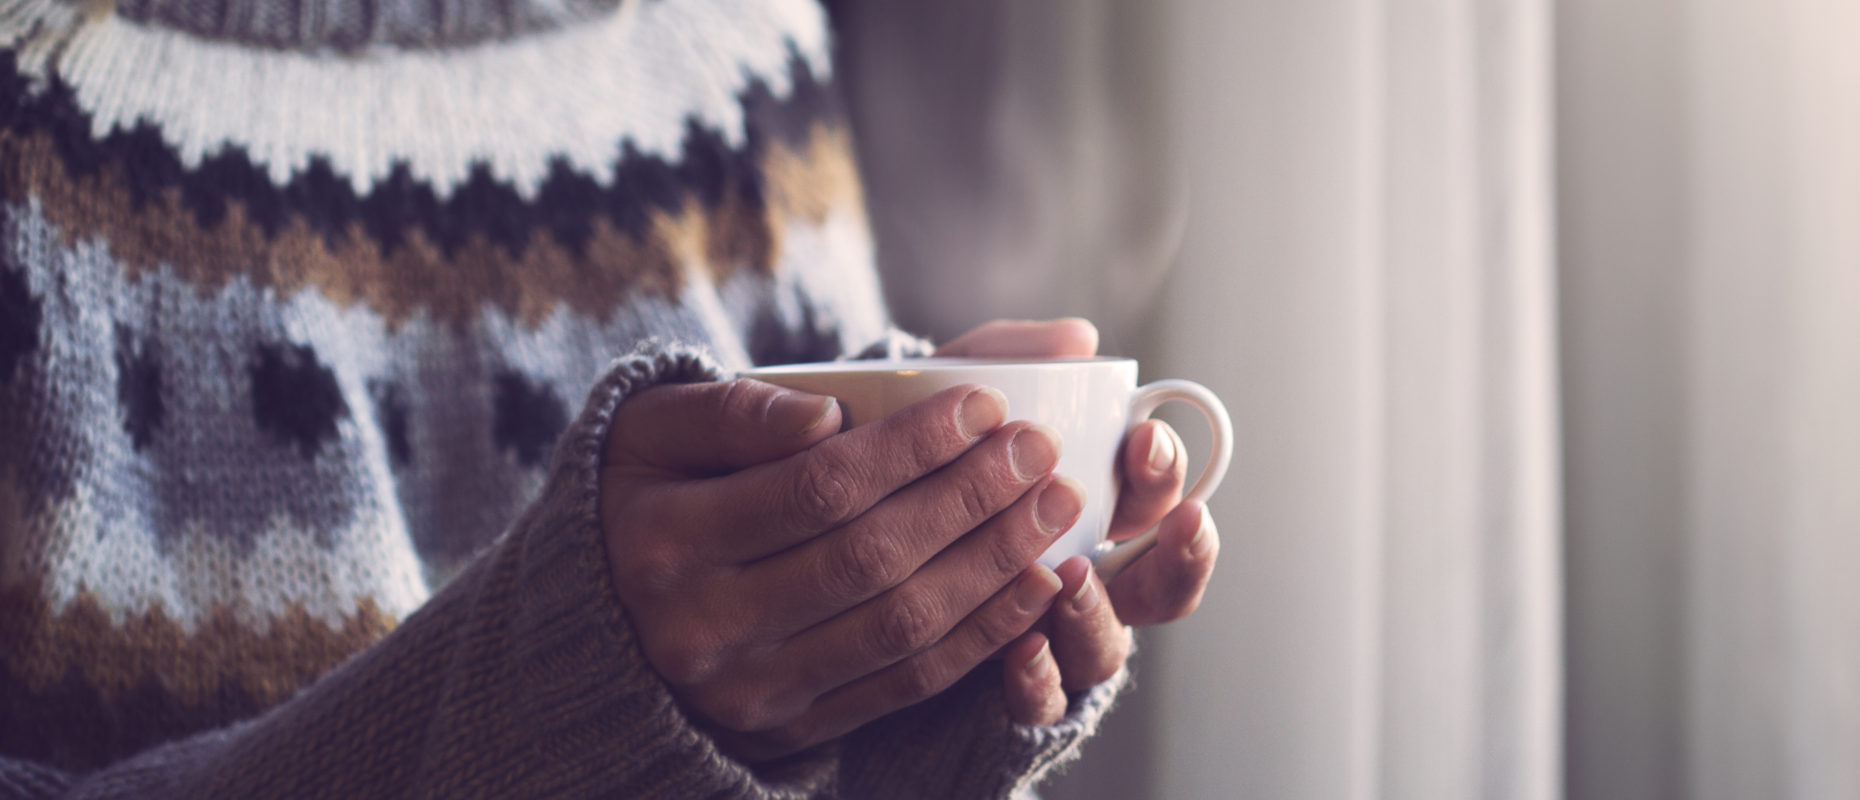 Donate to the cold weather shelter in central oregon